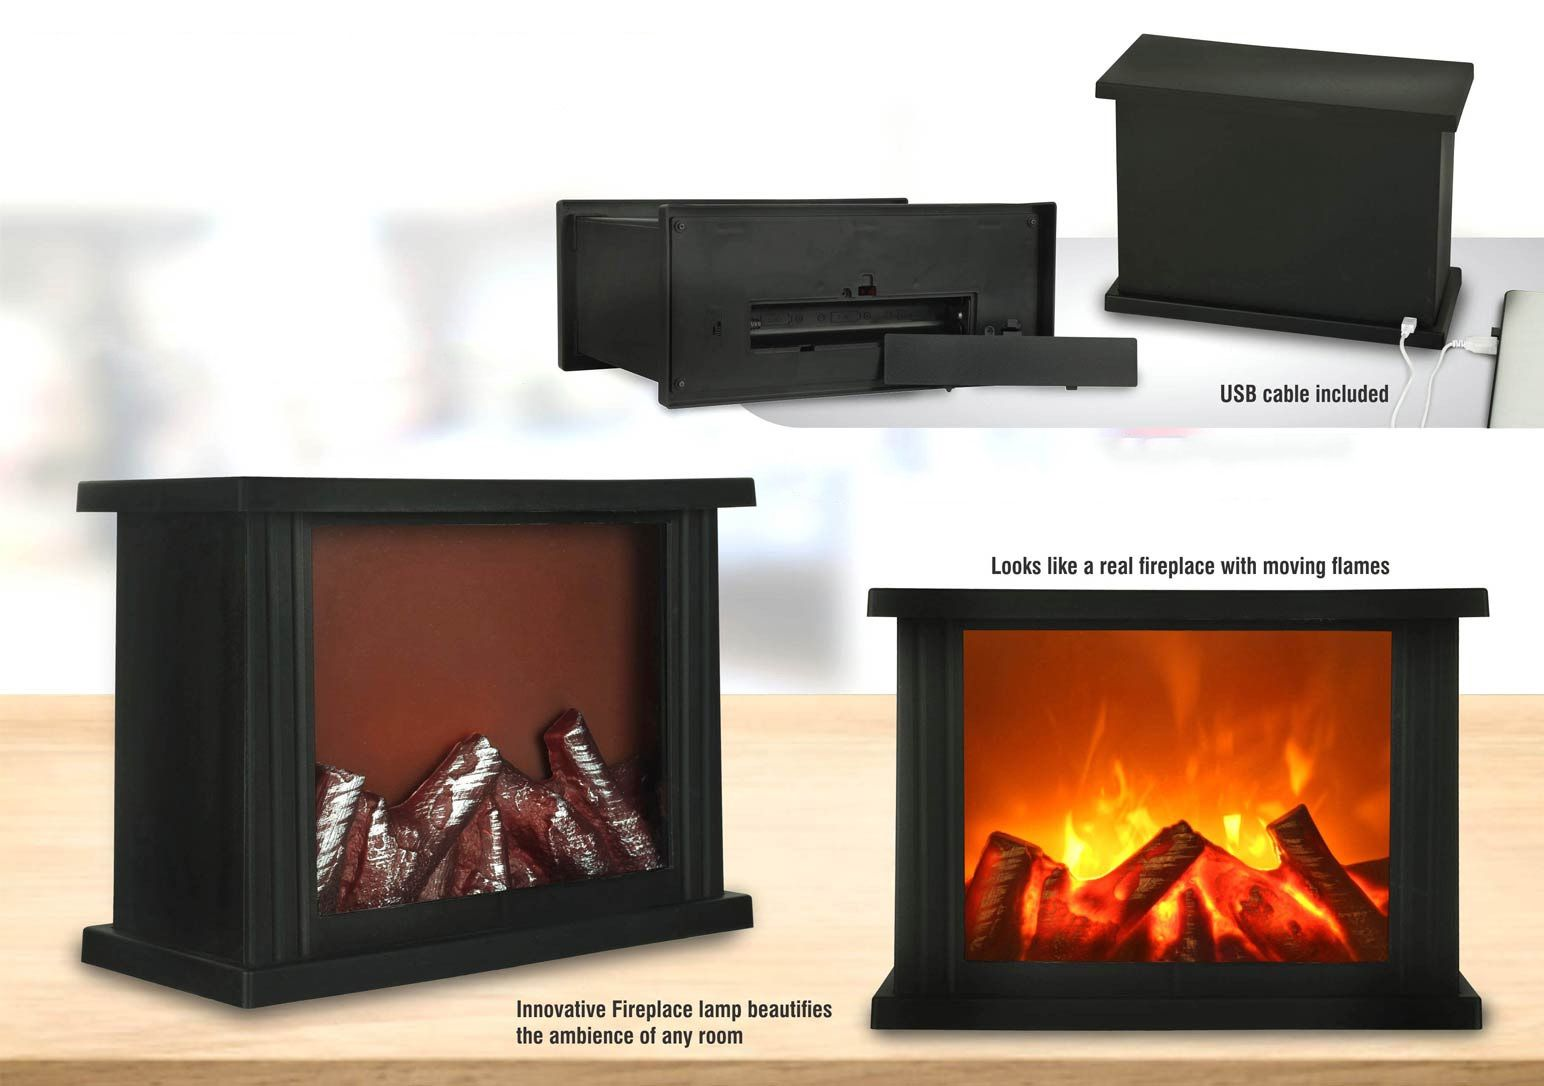 Power Plus Wooden Look Fireplace With Moving Flames | Works With Usb / Batteries | Cable Included E213 Black